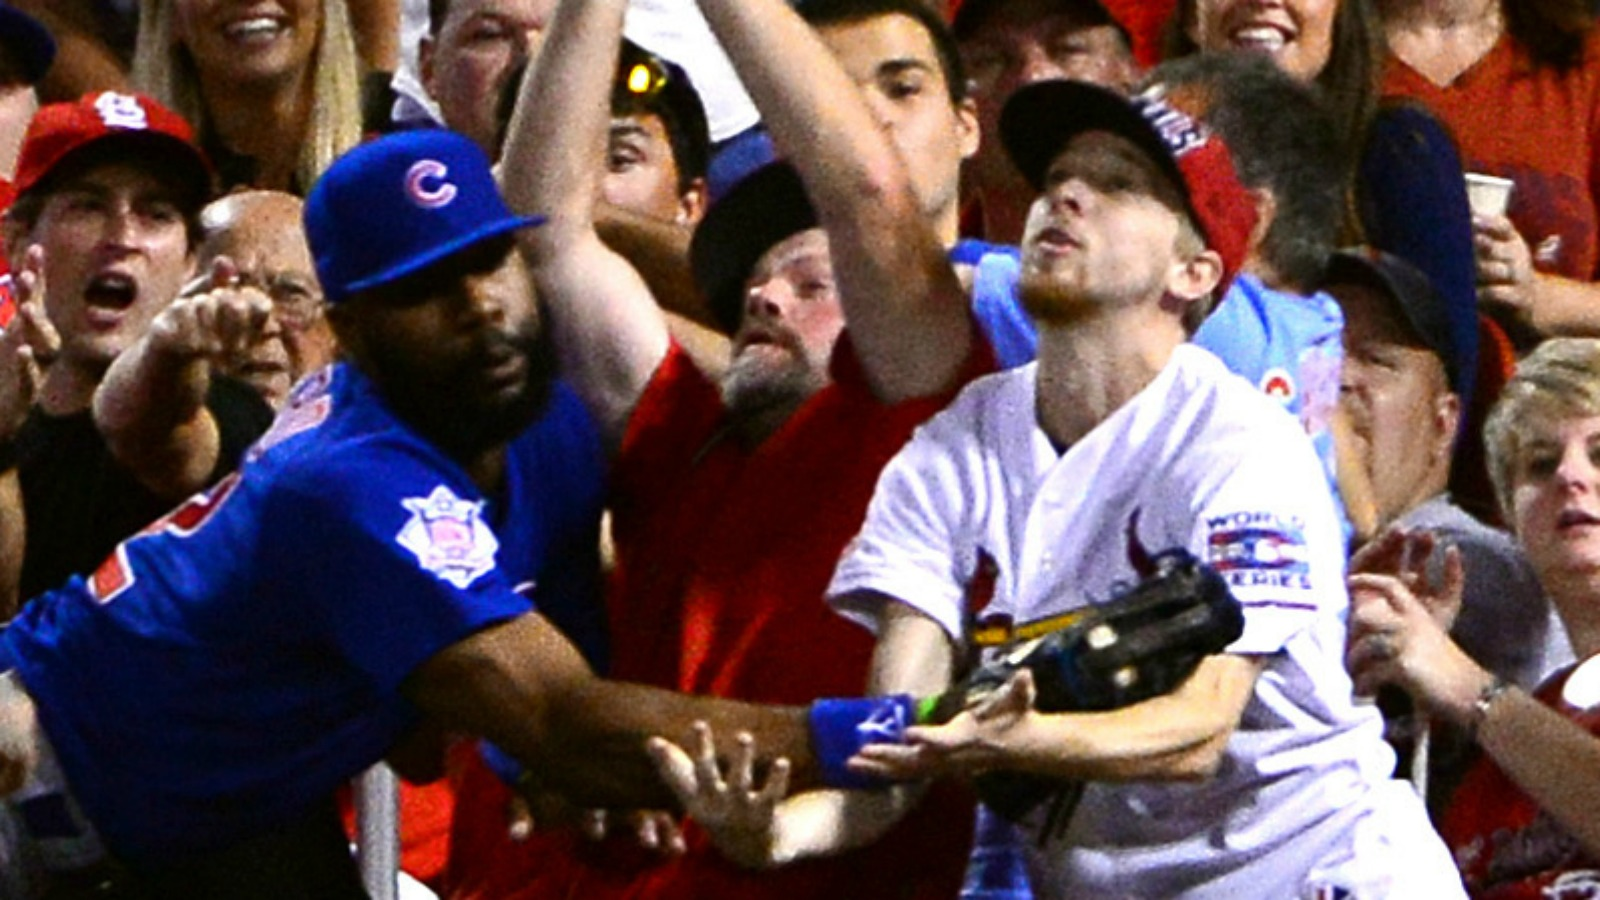 Watch a Cardinals fan try to steal Jason Heyward's glove after a great catch